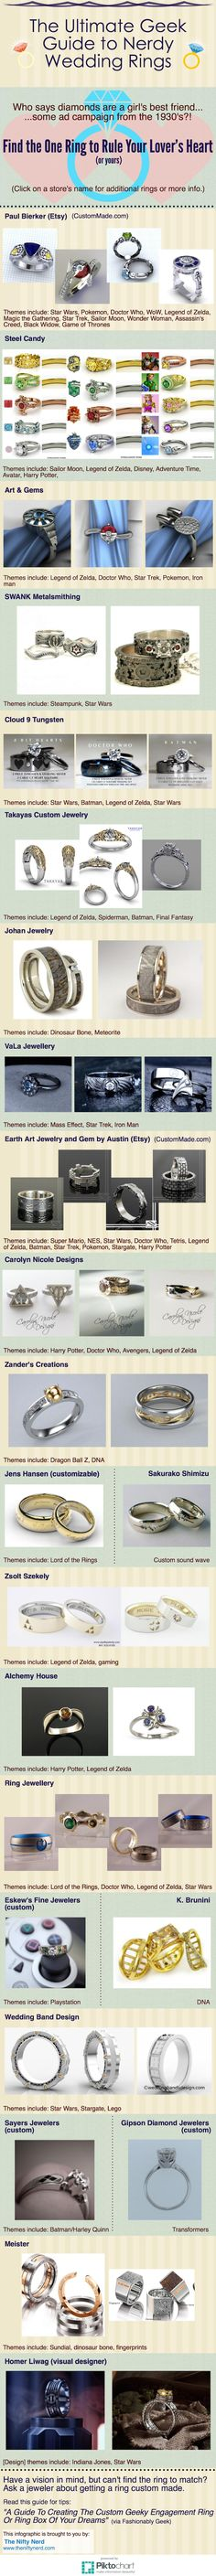 Nerd engagement rings & geeky wedding bands...this list of 50+ rings shows you where to buy the one ring to rule your lover's heart!